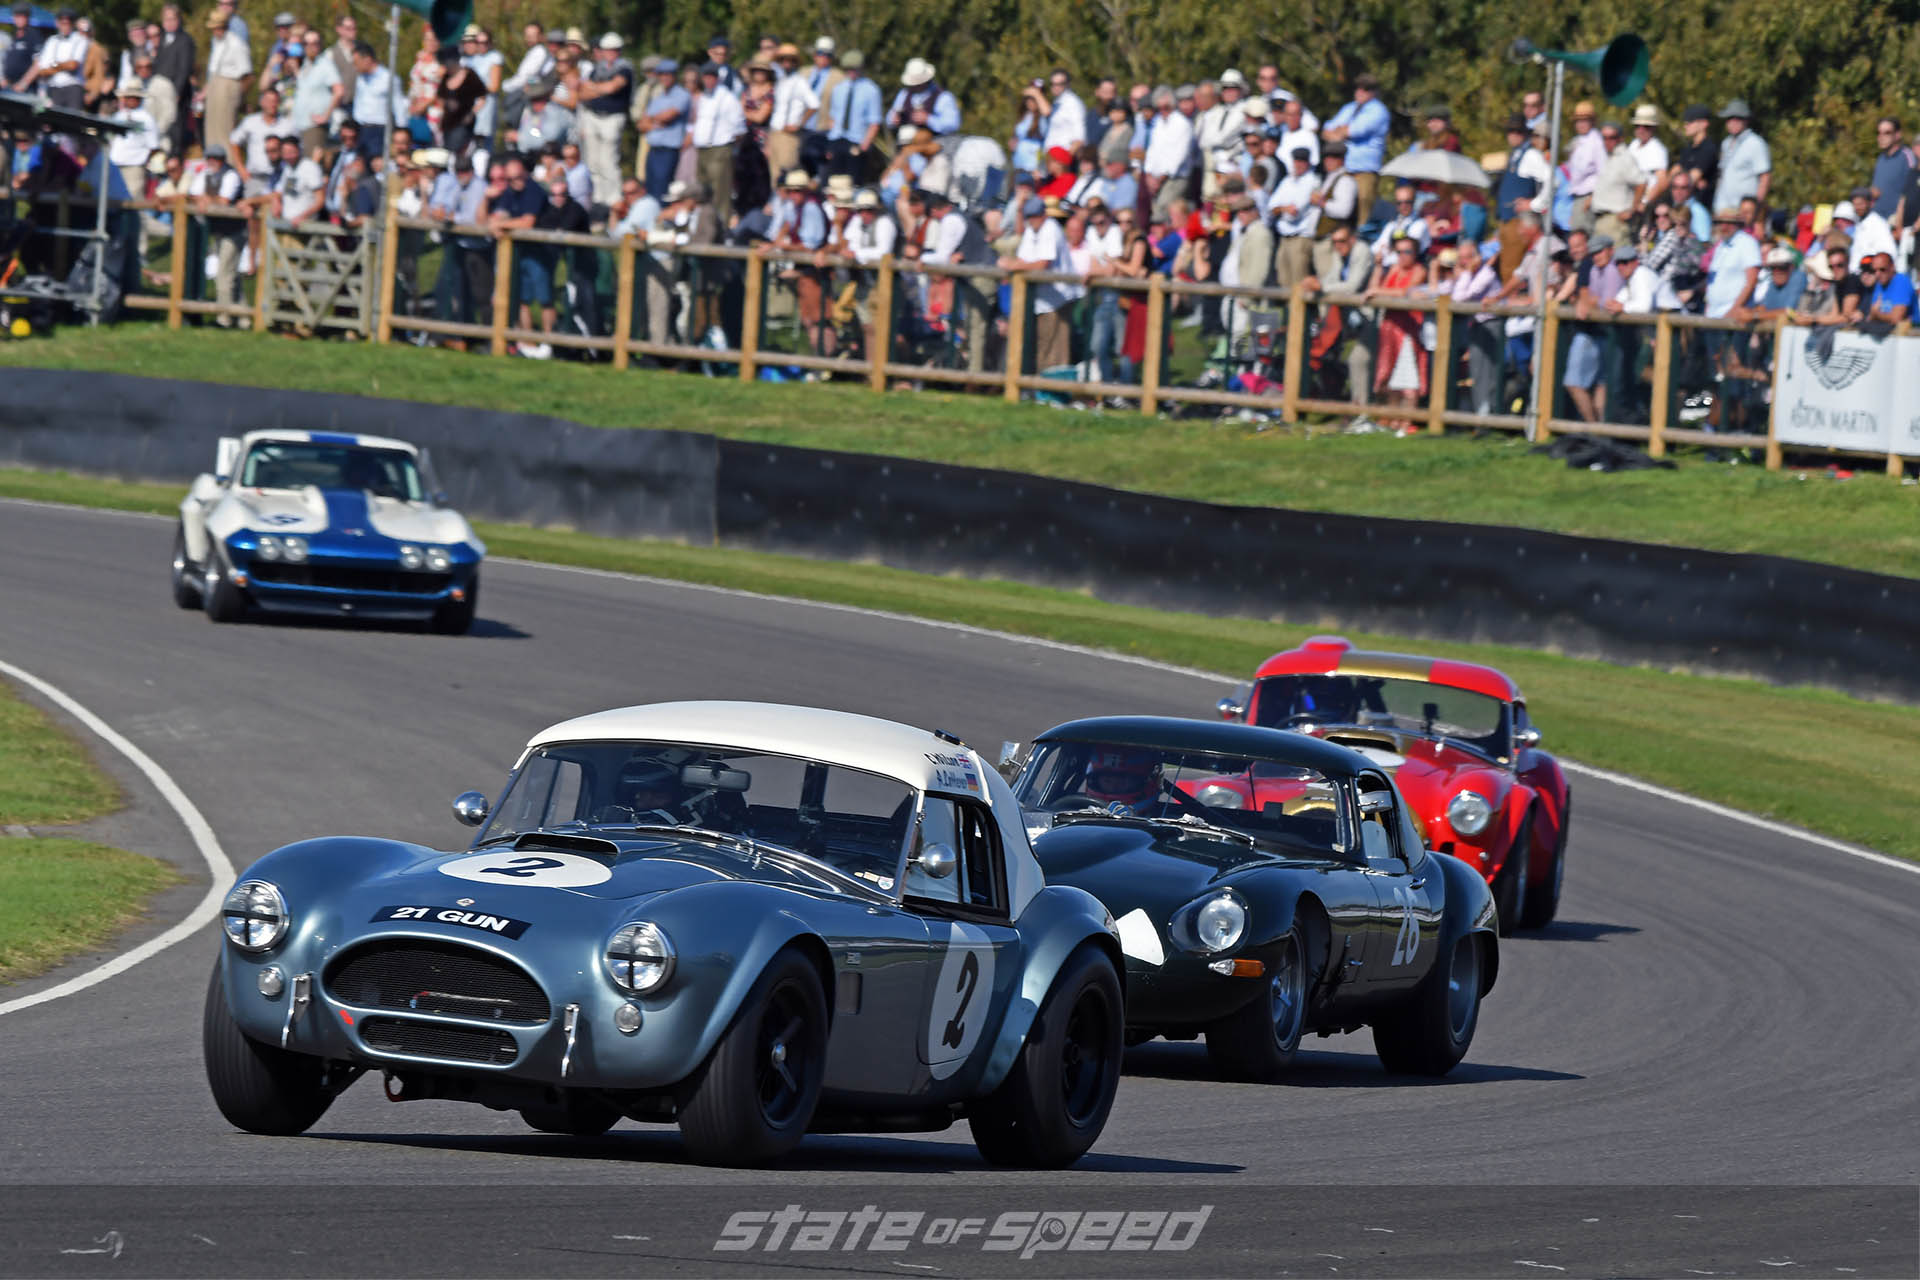 Vintage race cars on the track